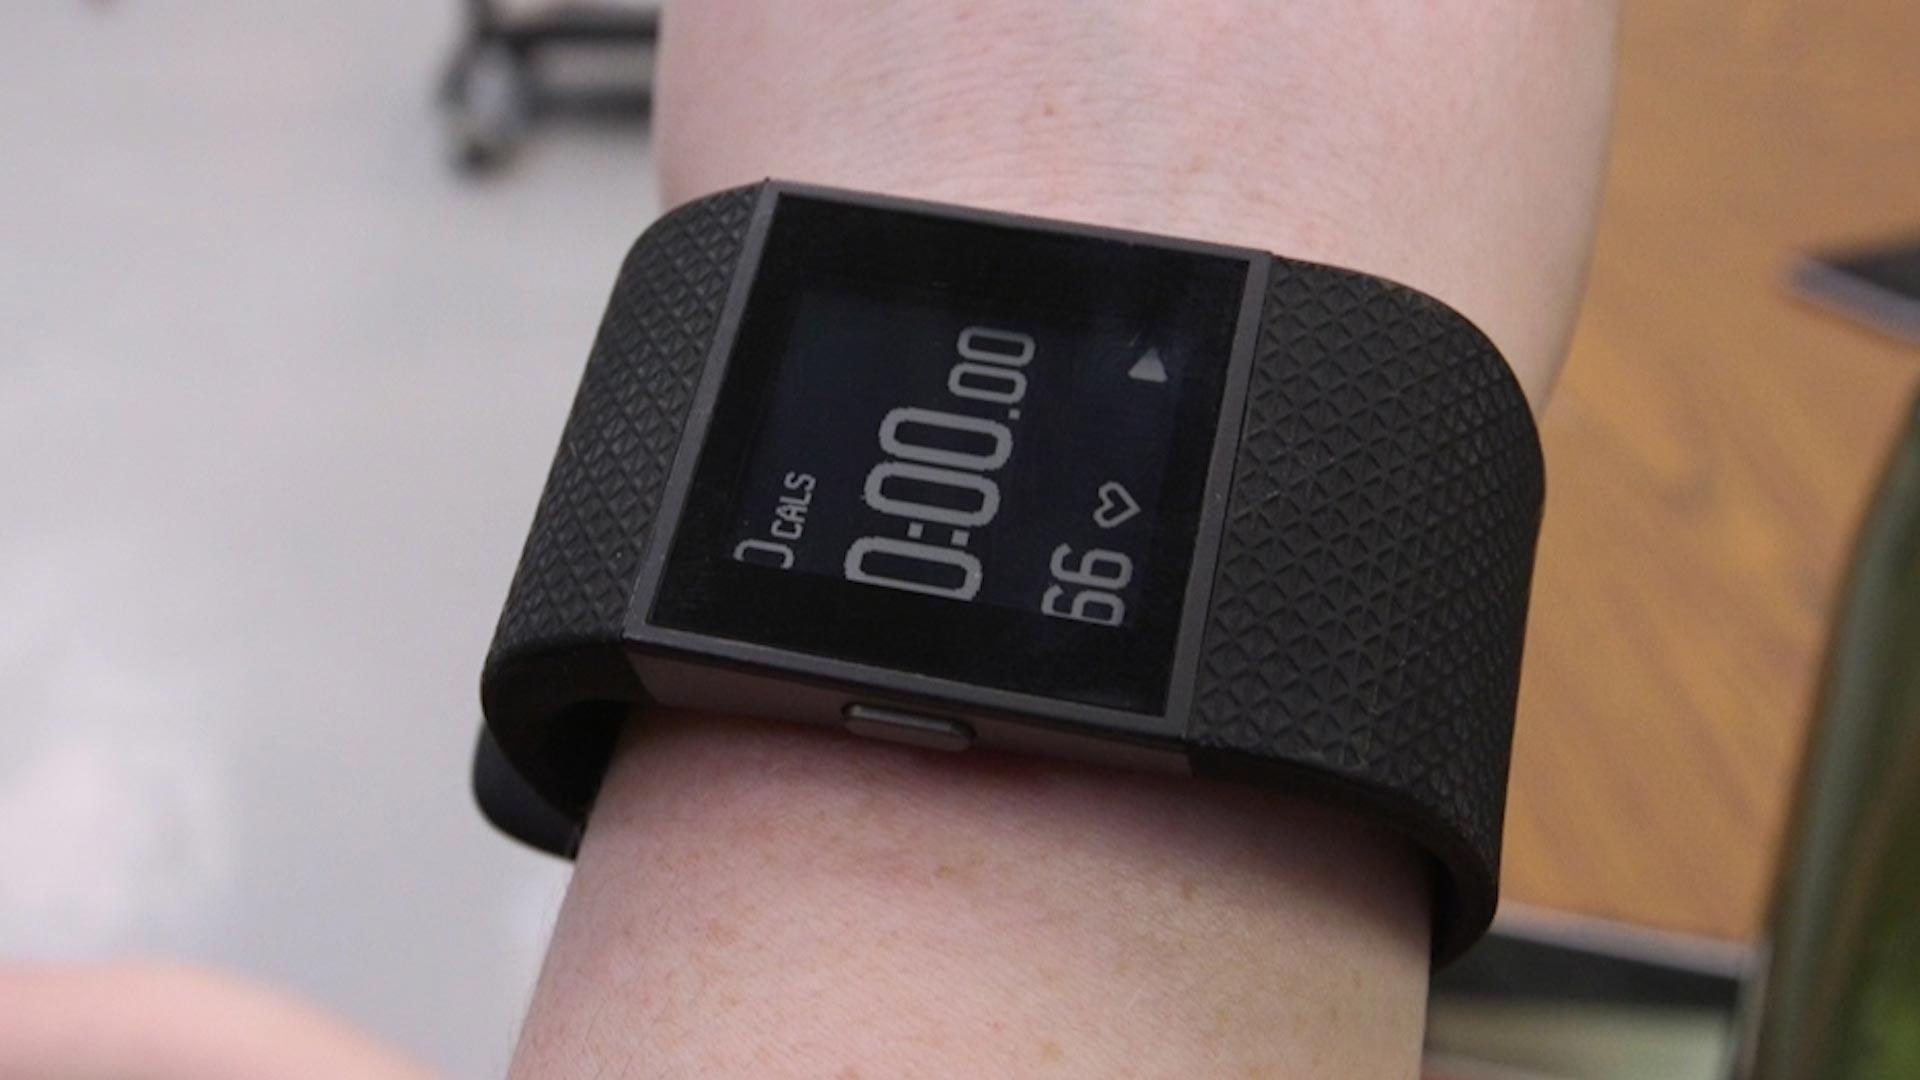 Taking the Pulse of Fitbit's Contested Heart Rate Monitors